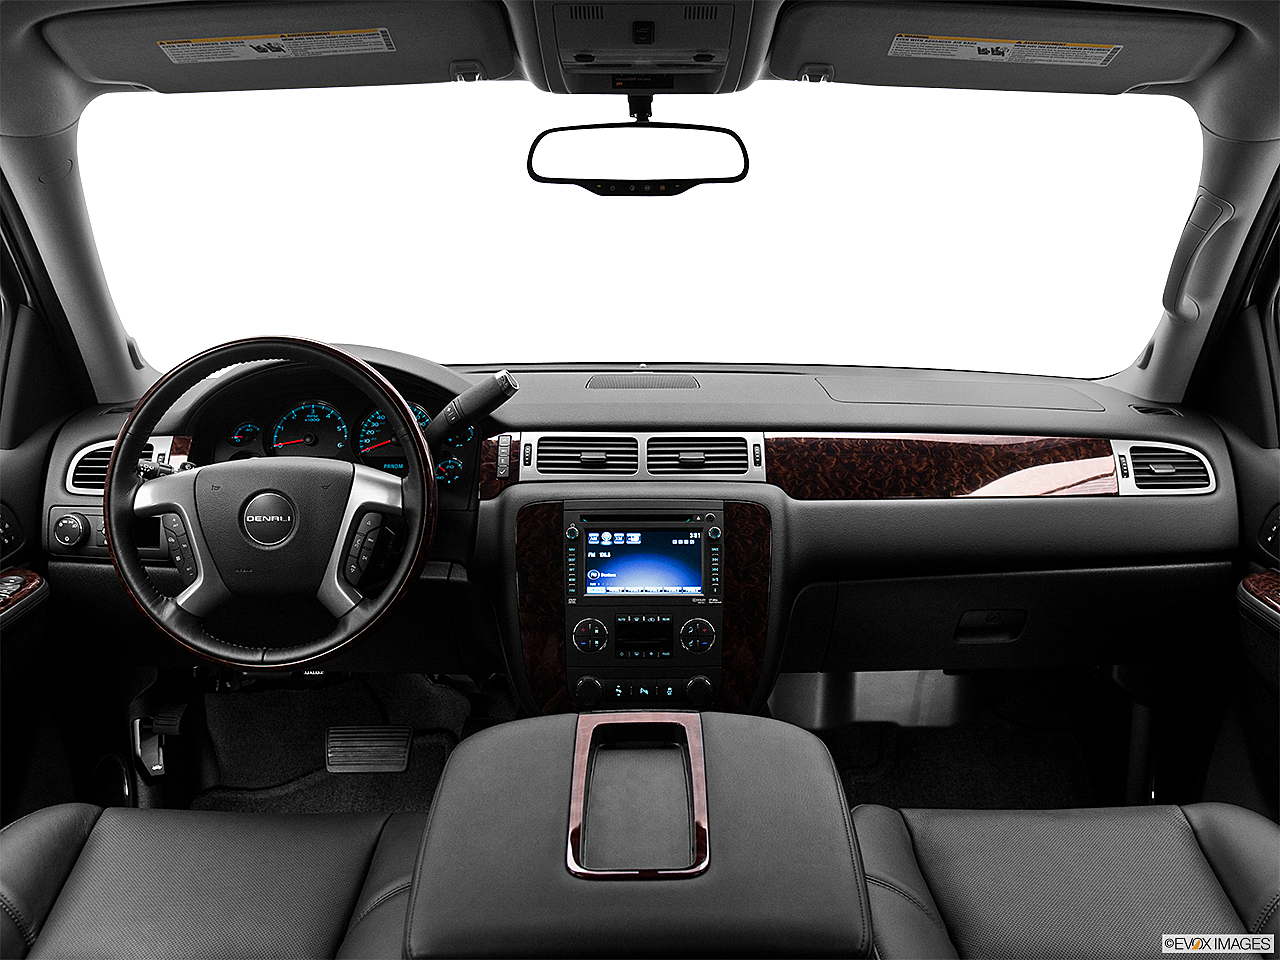 2013 GMC Yukon Denali, centered wide dash shot